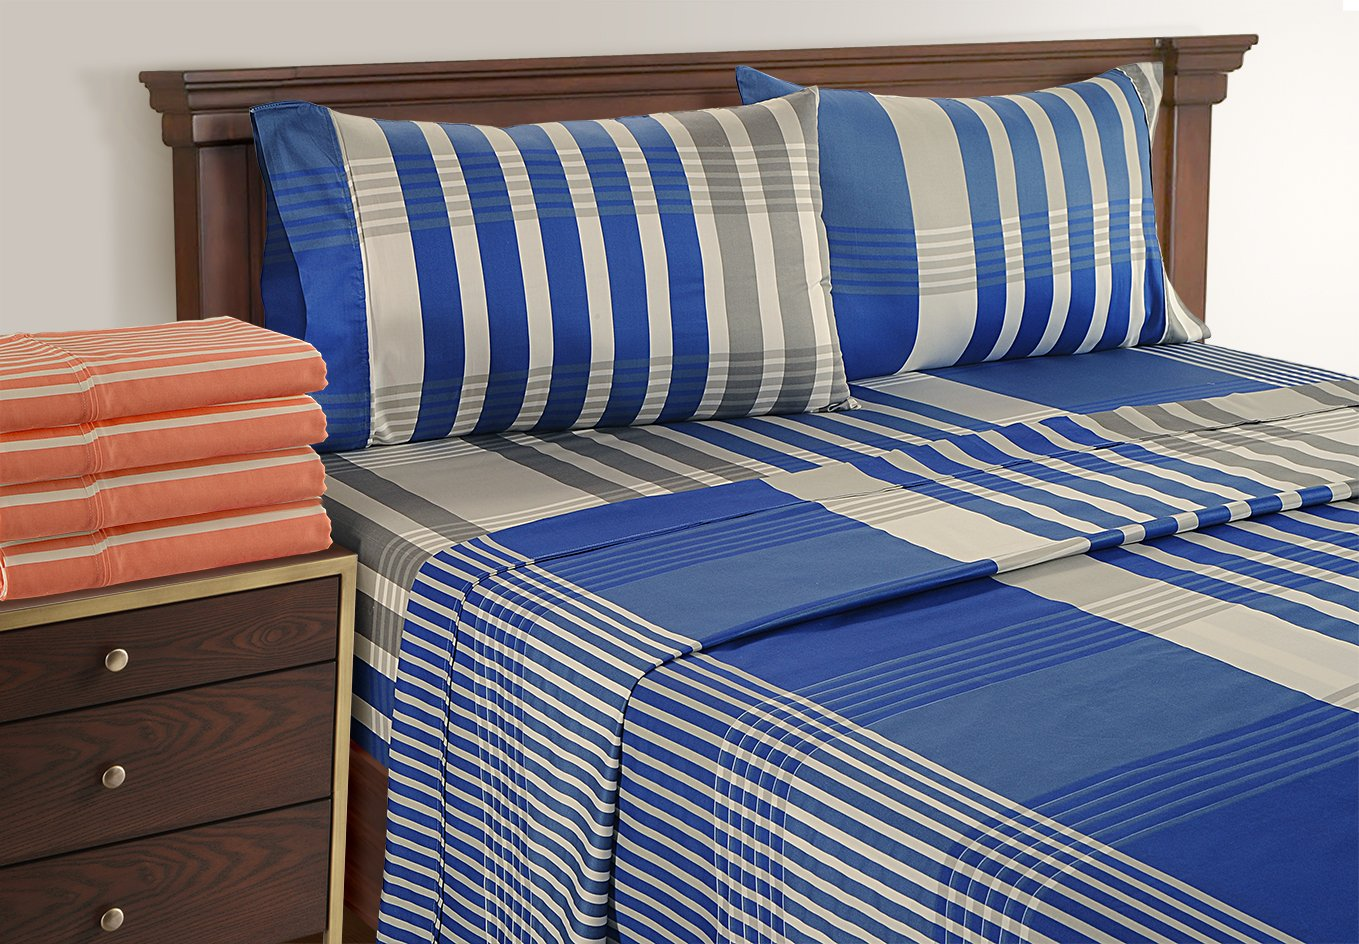 Linenwalas King Bed Sheets 100% Cotton - 300 Thread Count Bedding For Teens | Silky Soft Pattern Printed Sheets( Multi Stripes Navy Blue Gray, King)